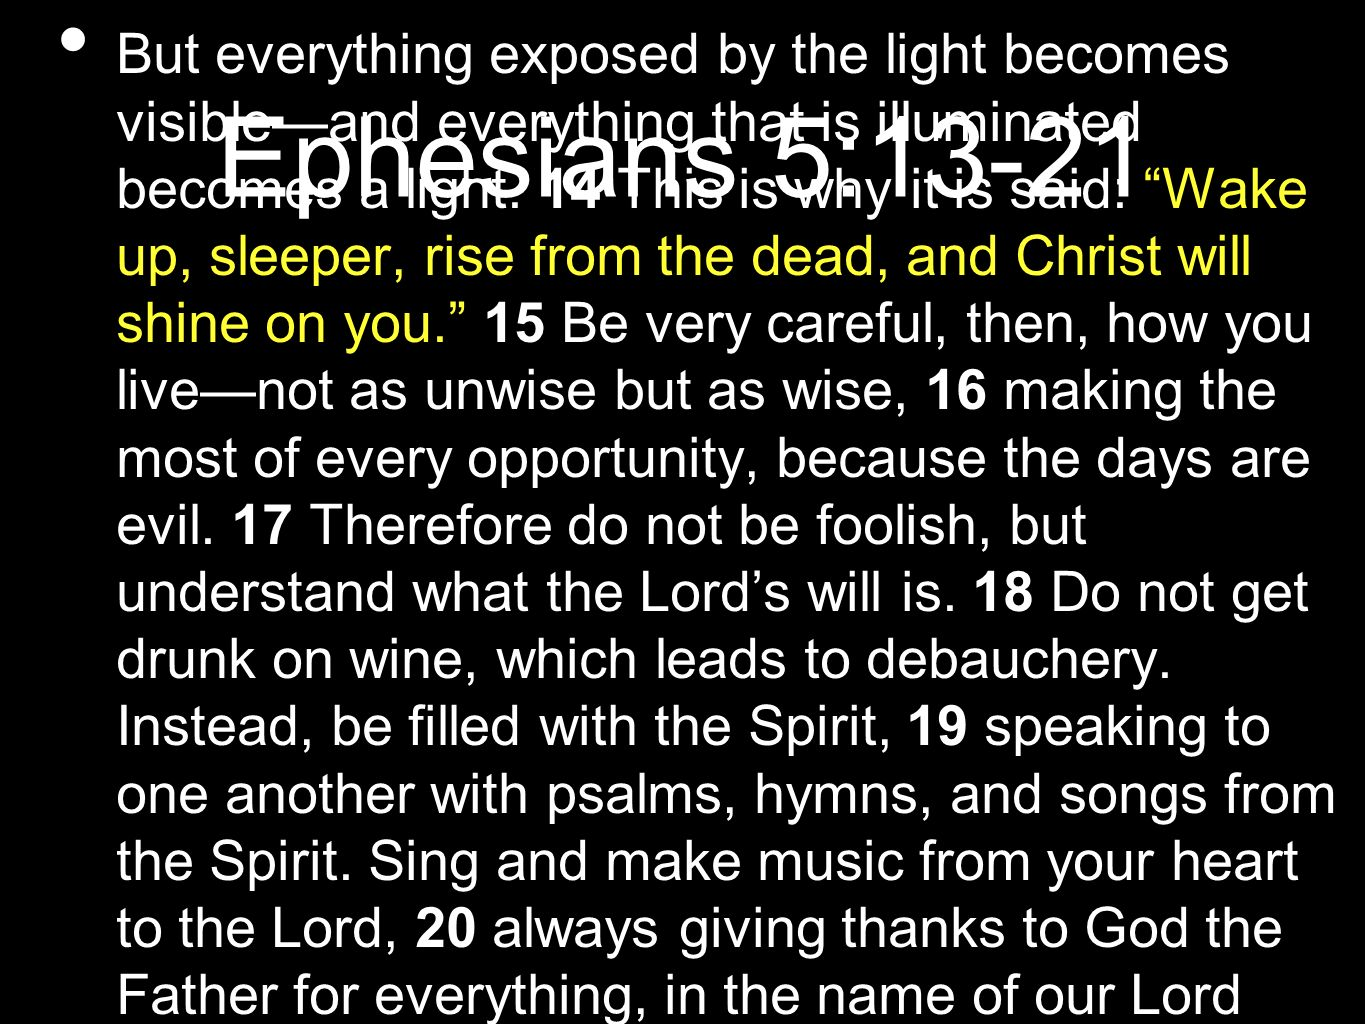 Ephesians 5:13-21 But everything exposed by the light becomes visibleand everything that is illuminated becomes a light. 14 This is why it is said: Wa